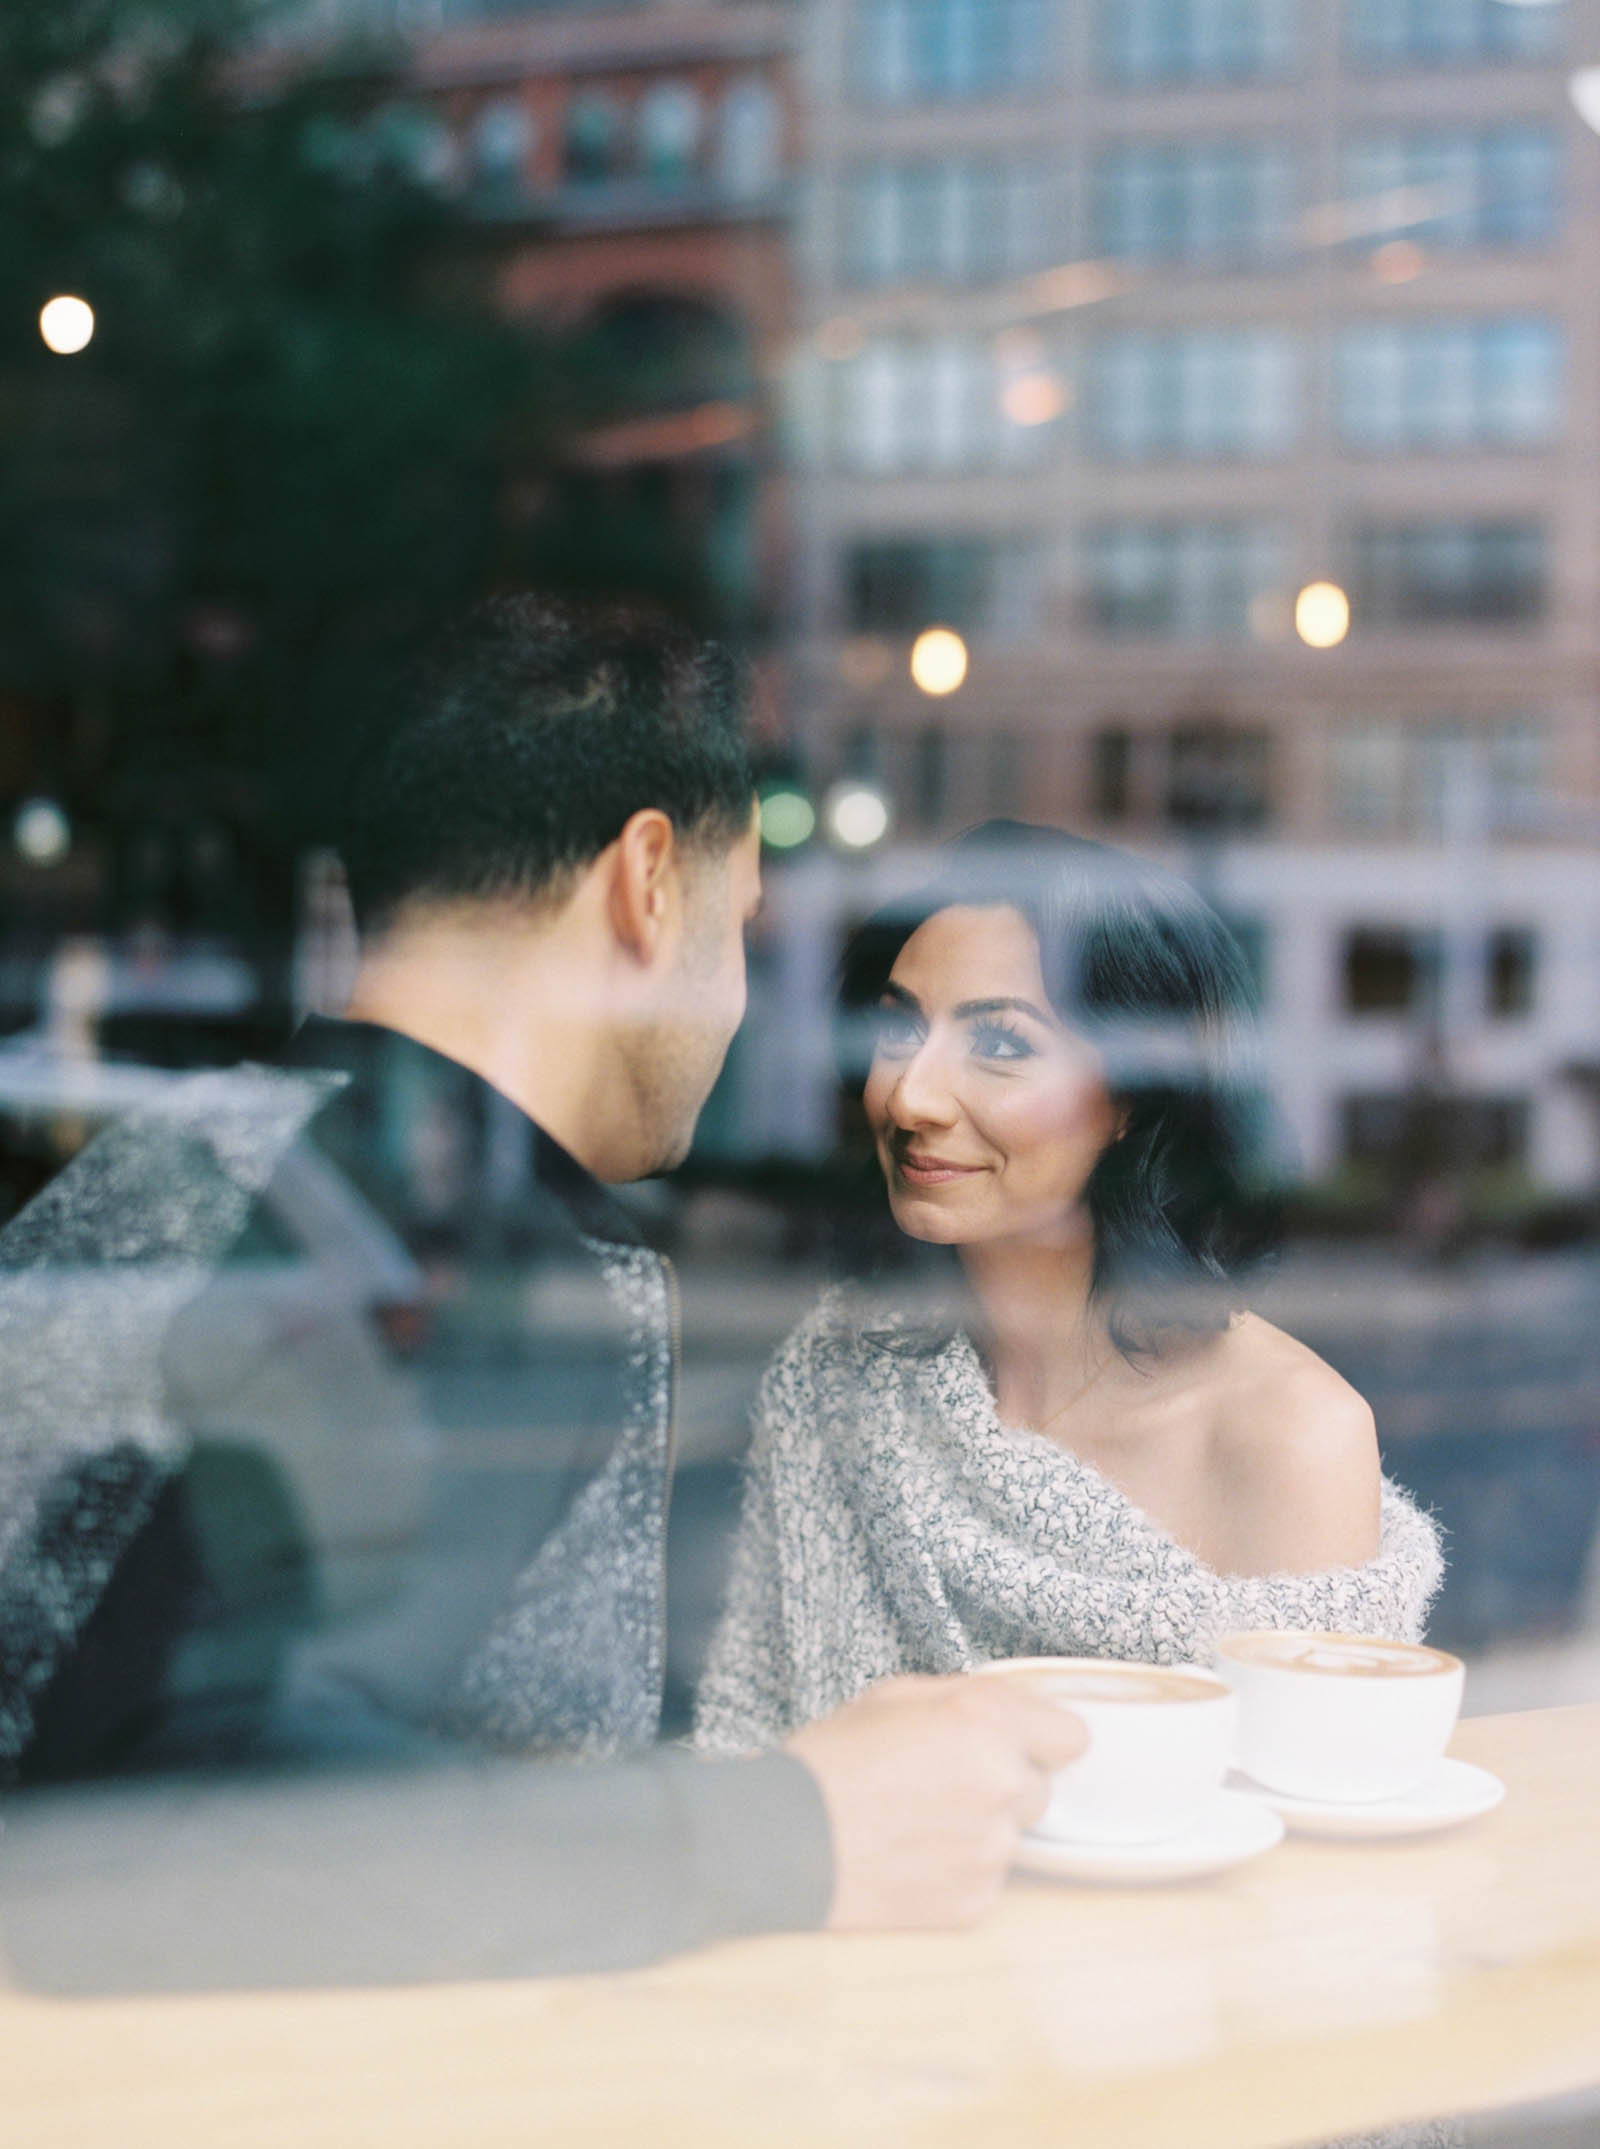 Couple's photos in a coffee shop -krmorenophoto